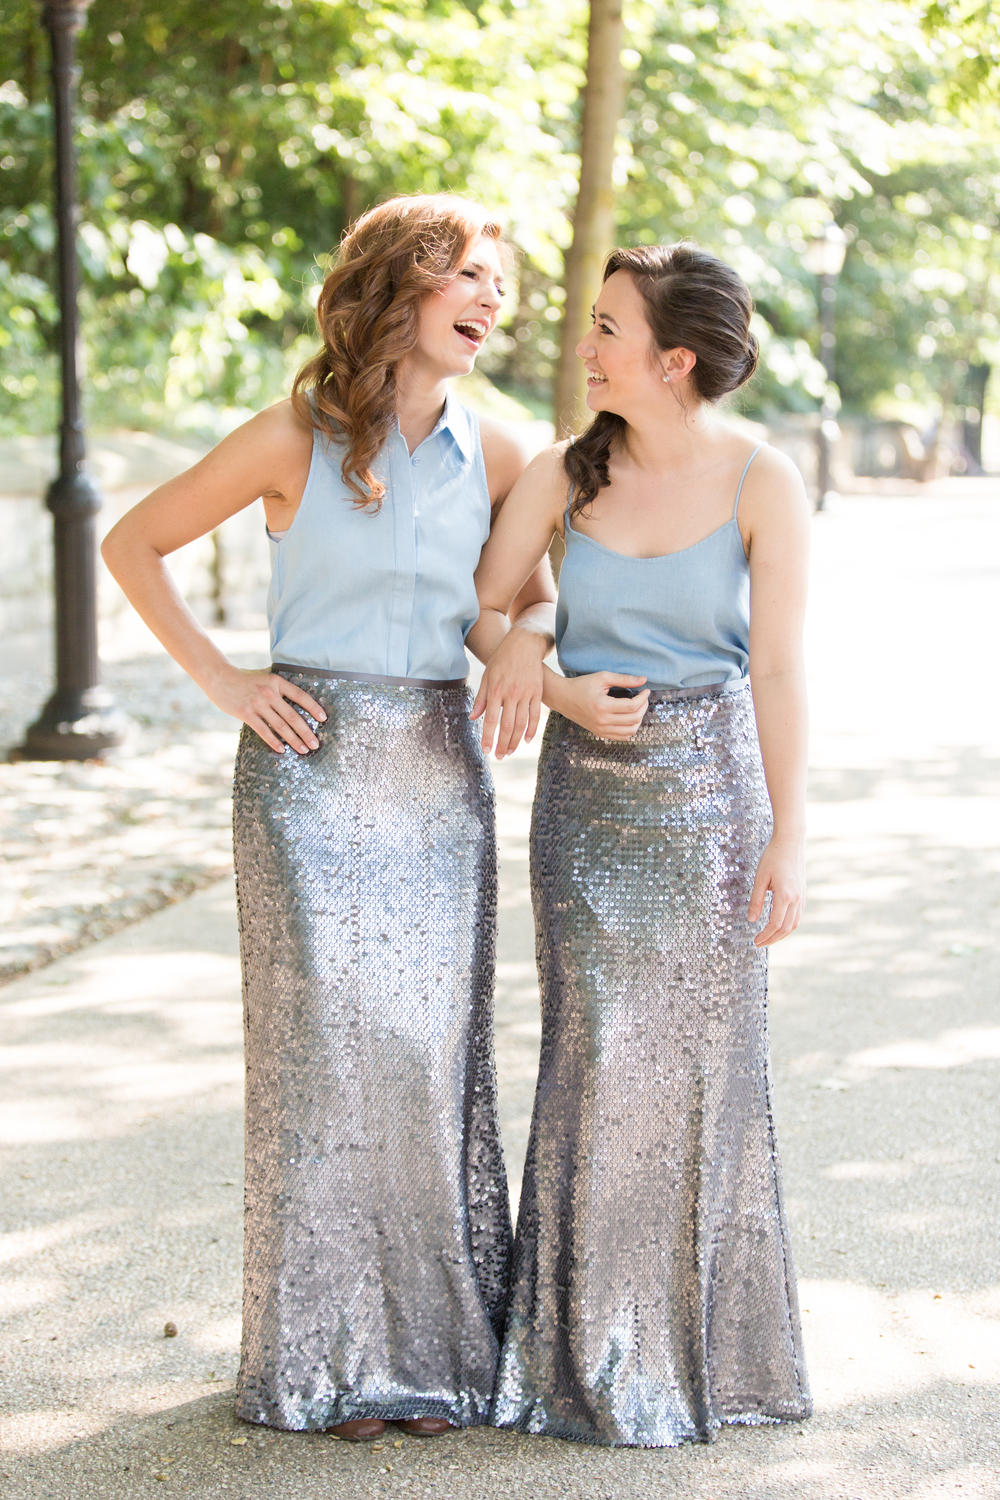 hannah_shih_hanaluluco_cj_isaac_charlie_juliet_ombre_chambray_prospect_park_brooklyn_wedding_19.jpg